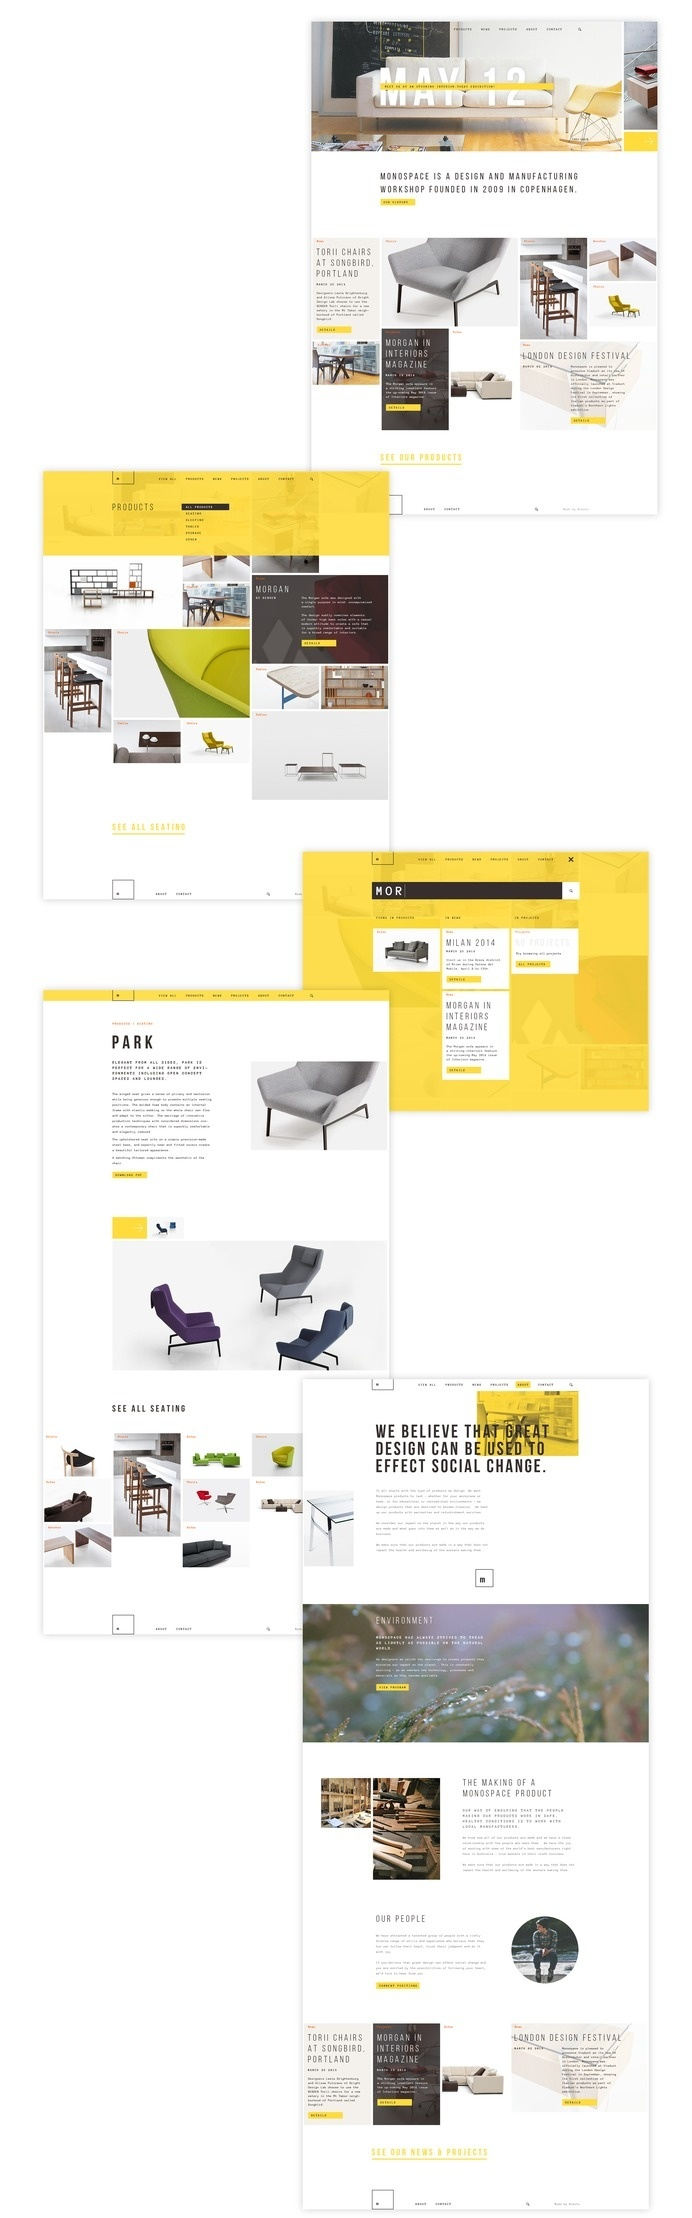 Monospace website concept #grid #white #yellow #interior #website #web #responsive #furniture #niketo #saint-petersburg #russia